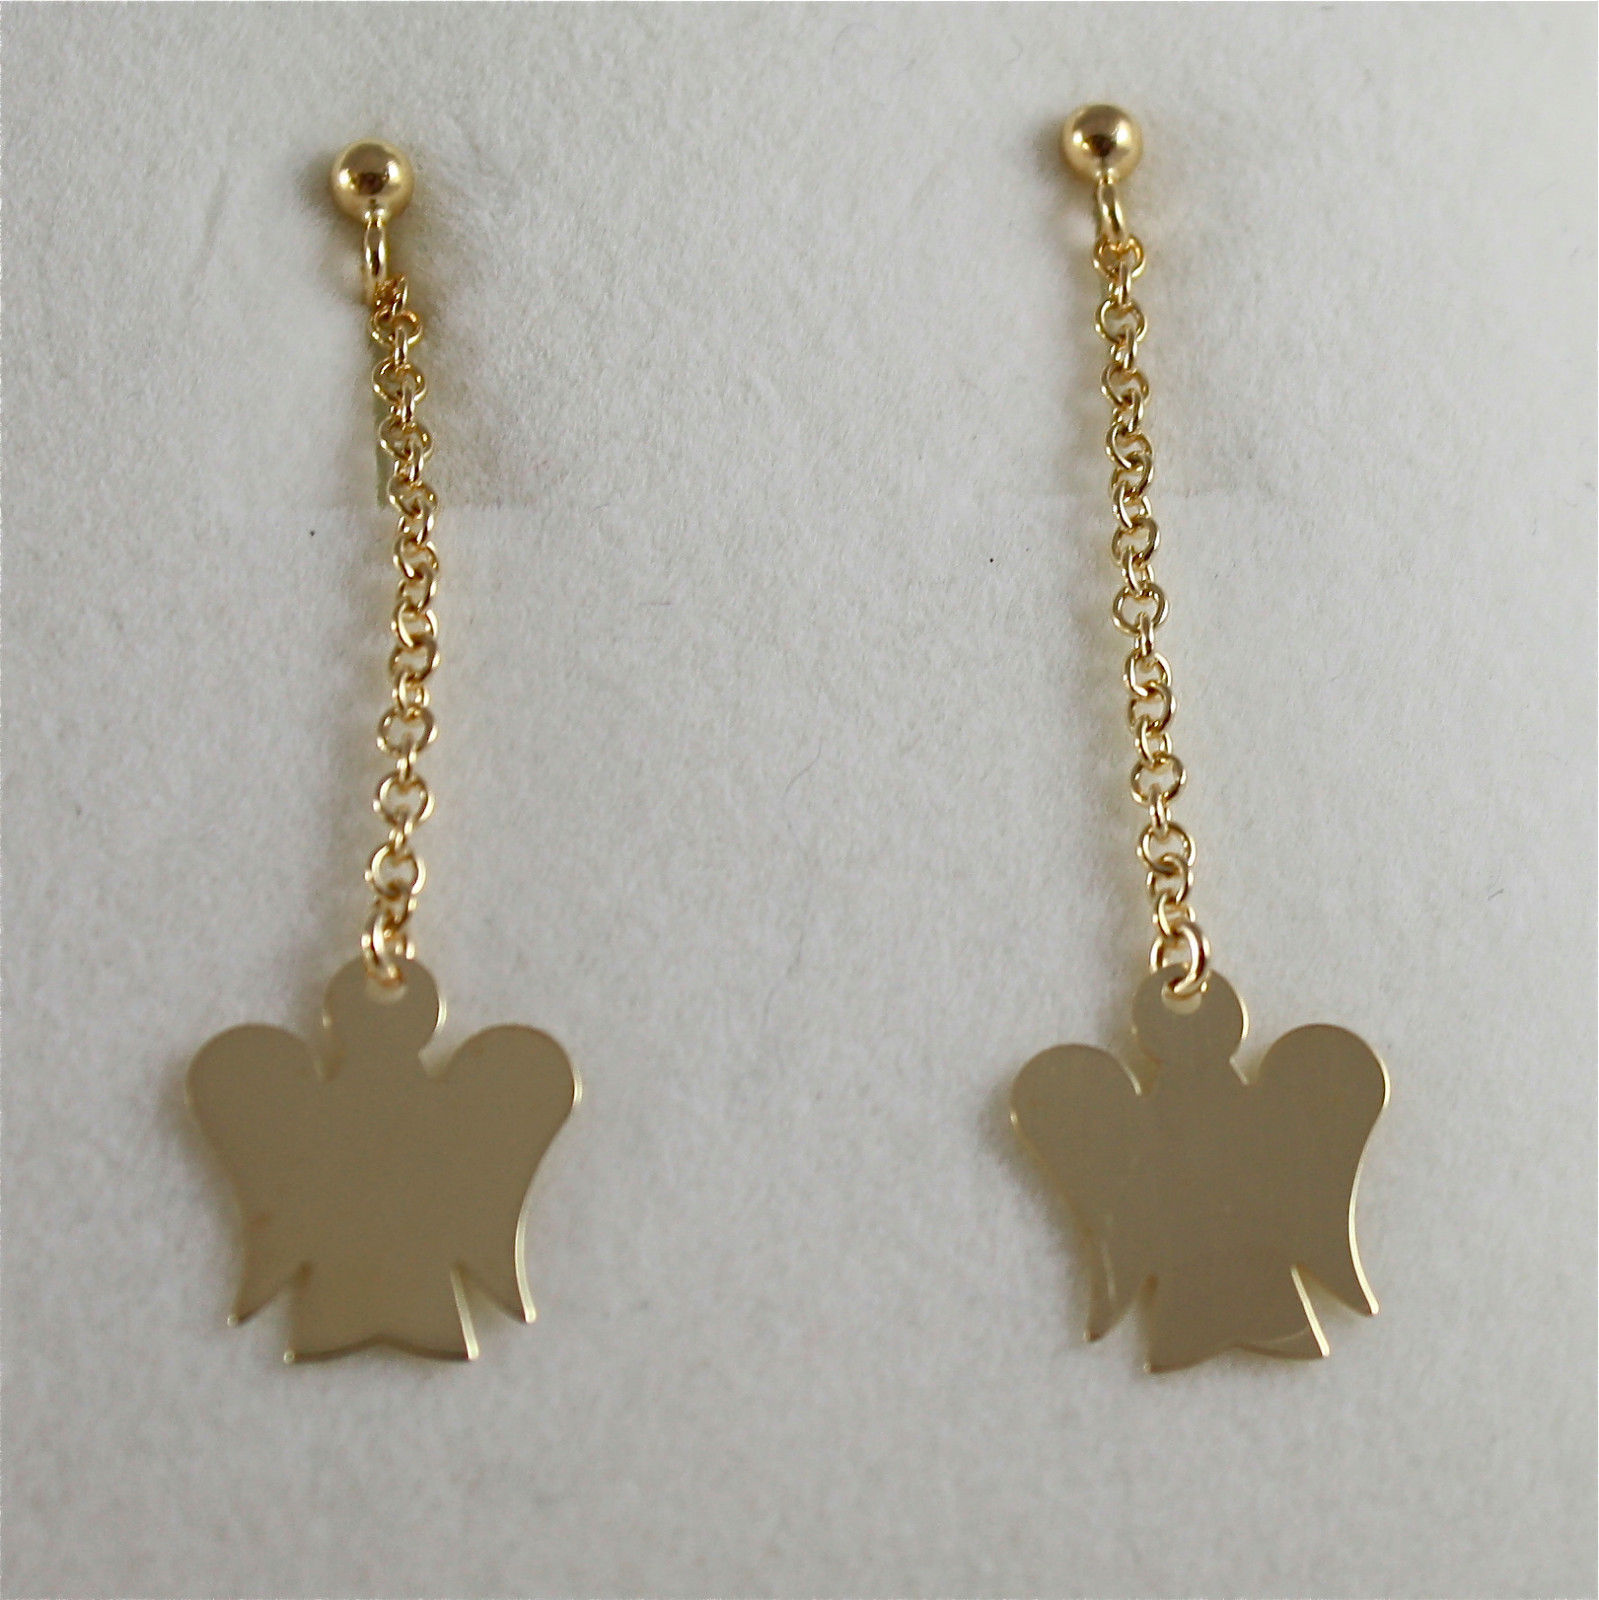 9KT YELLOW GOLD EARRINGS ANGELS PENDANT MADE IN ITALY ROBERTO GIANNOTTI NKT159G